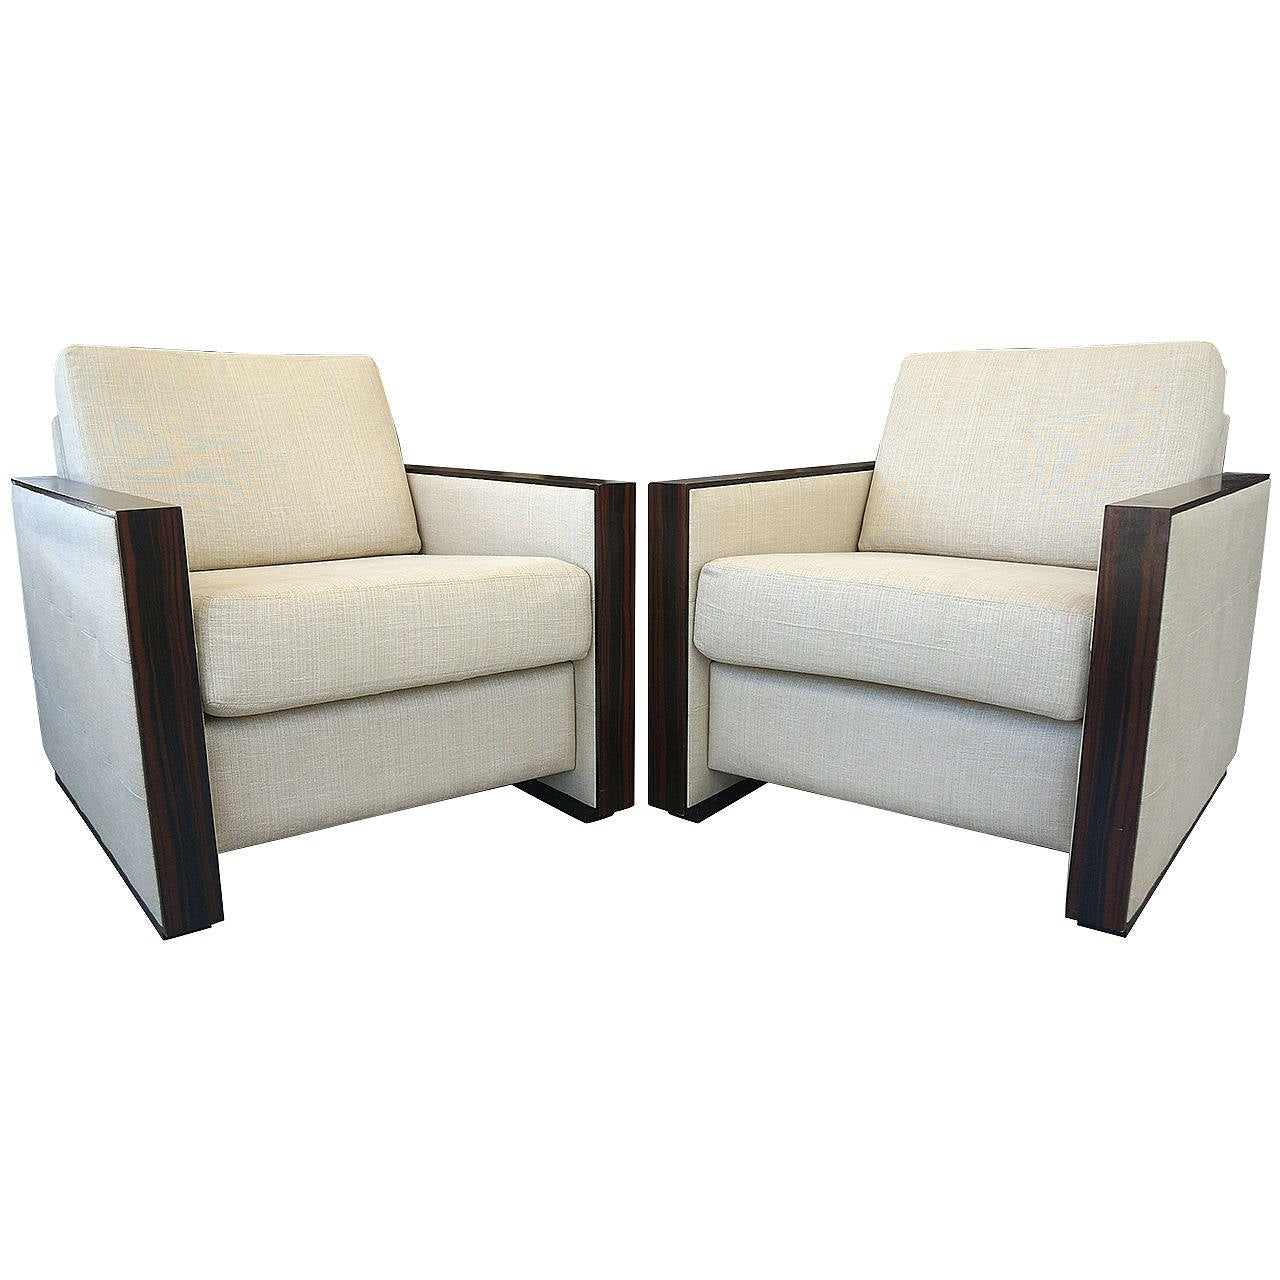 Pair Of Jeanmichel Frank, Art Deco Style , Club Chairs In Zebra Wood